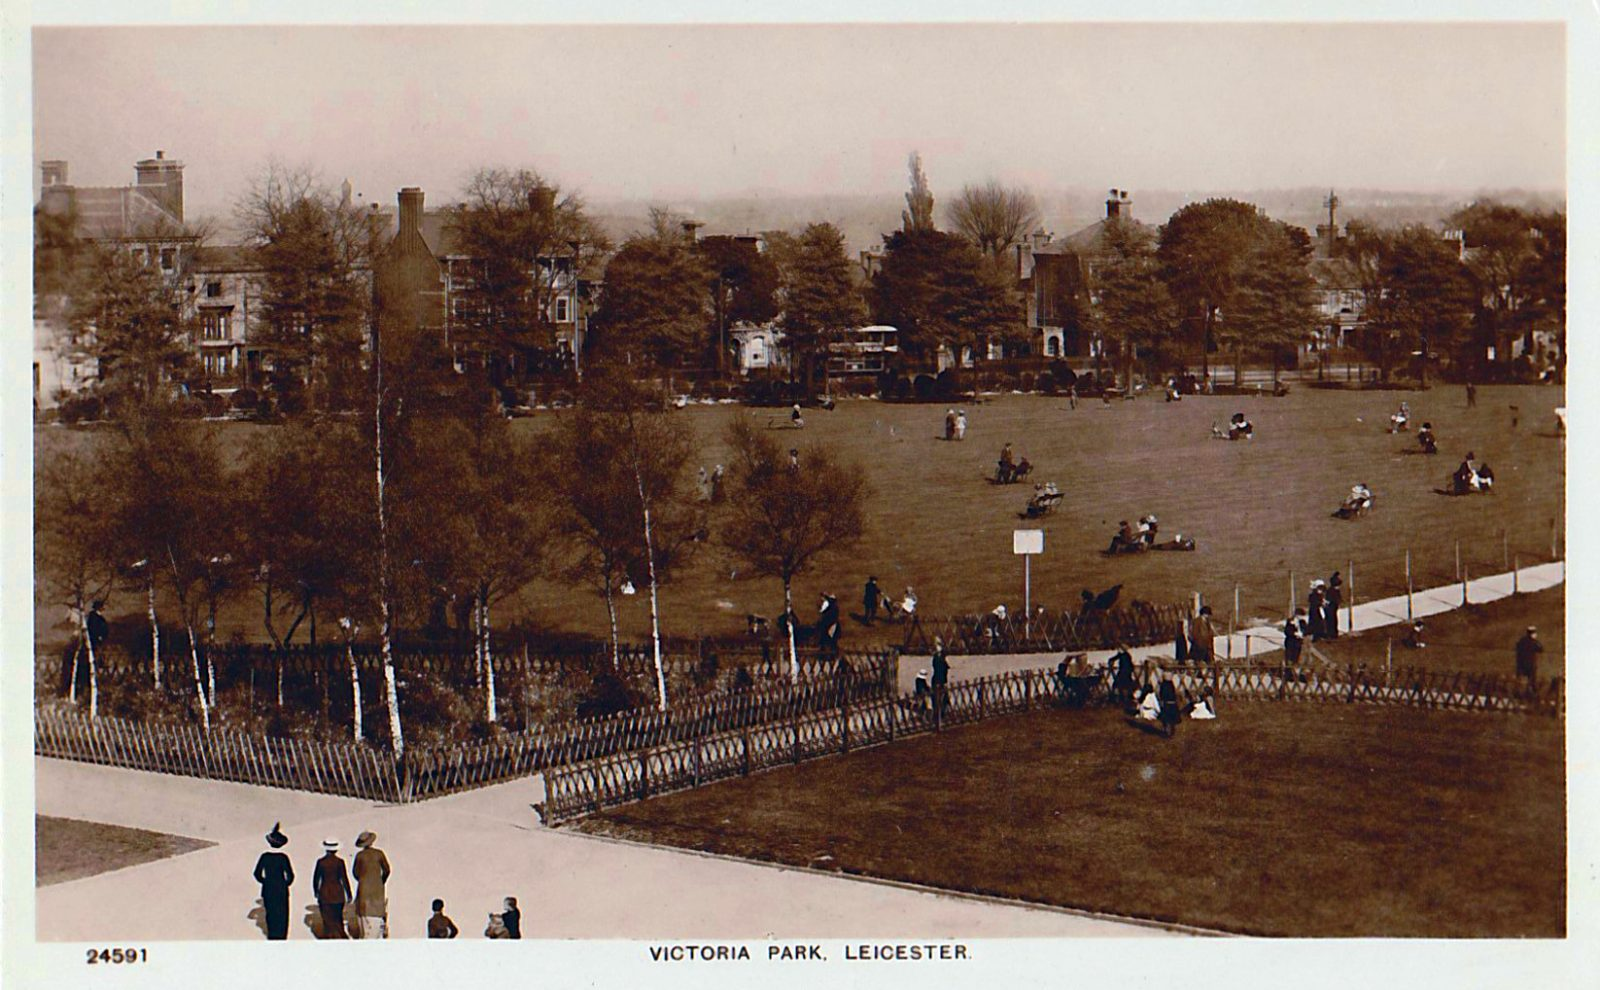 Victoria Park, Leicester. 1901-1920: View across the park. Probably from the Pavilion (File:1446)